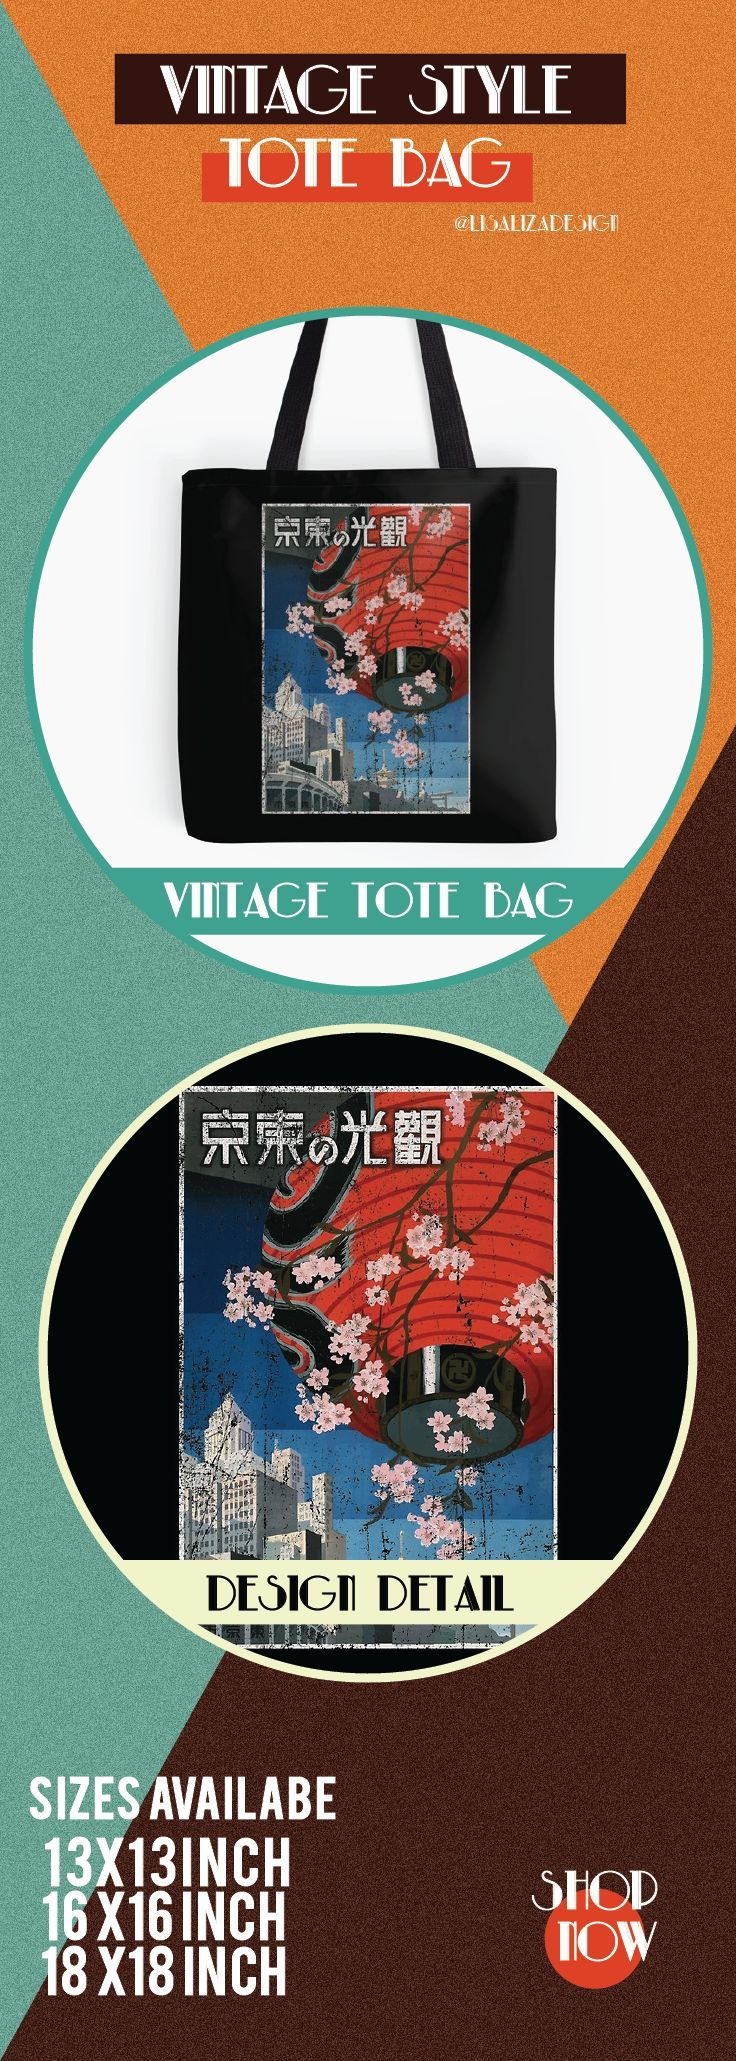 Vintage Travel Poster, Aged and Weathered - Tokyo Japan 1930s.  ToteBags  A collection design inspired by vintage travel and advertisements posters  from the late 19th century printed on durable tote bags. 3 Sizes available .  Excellent gift ideas for vintage lovers and everyone. #vintage #hugs #holidaygift #oldies #homedecor #retro #travelposter #totebag #redbubble #teepublic #lisalizadesign #vintageposter #oldies